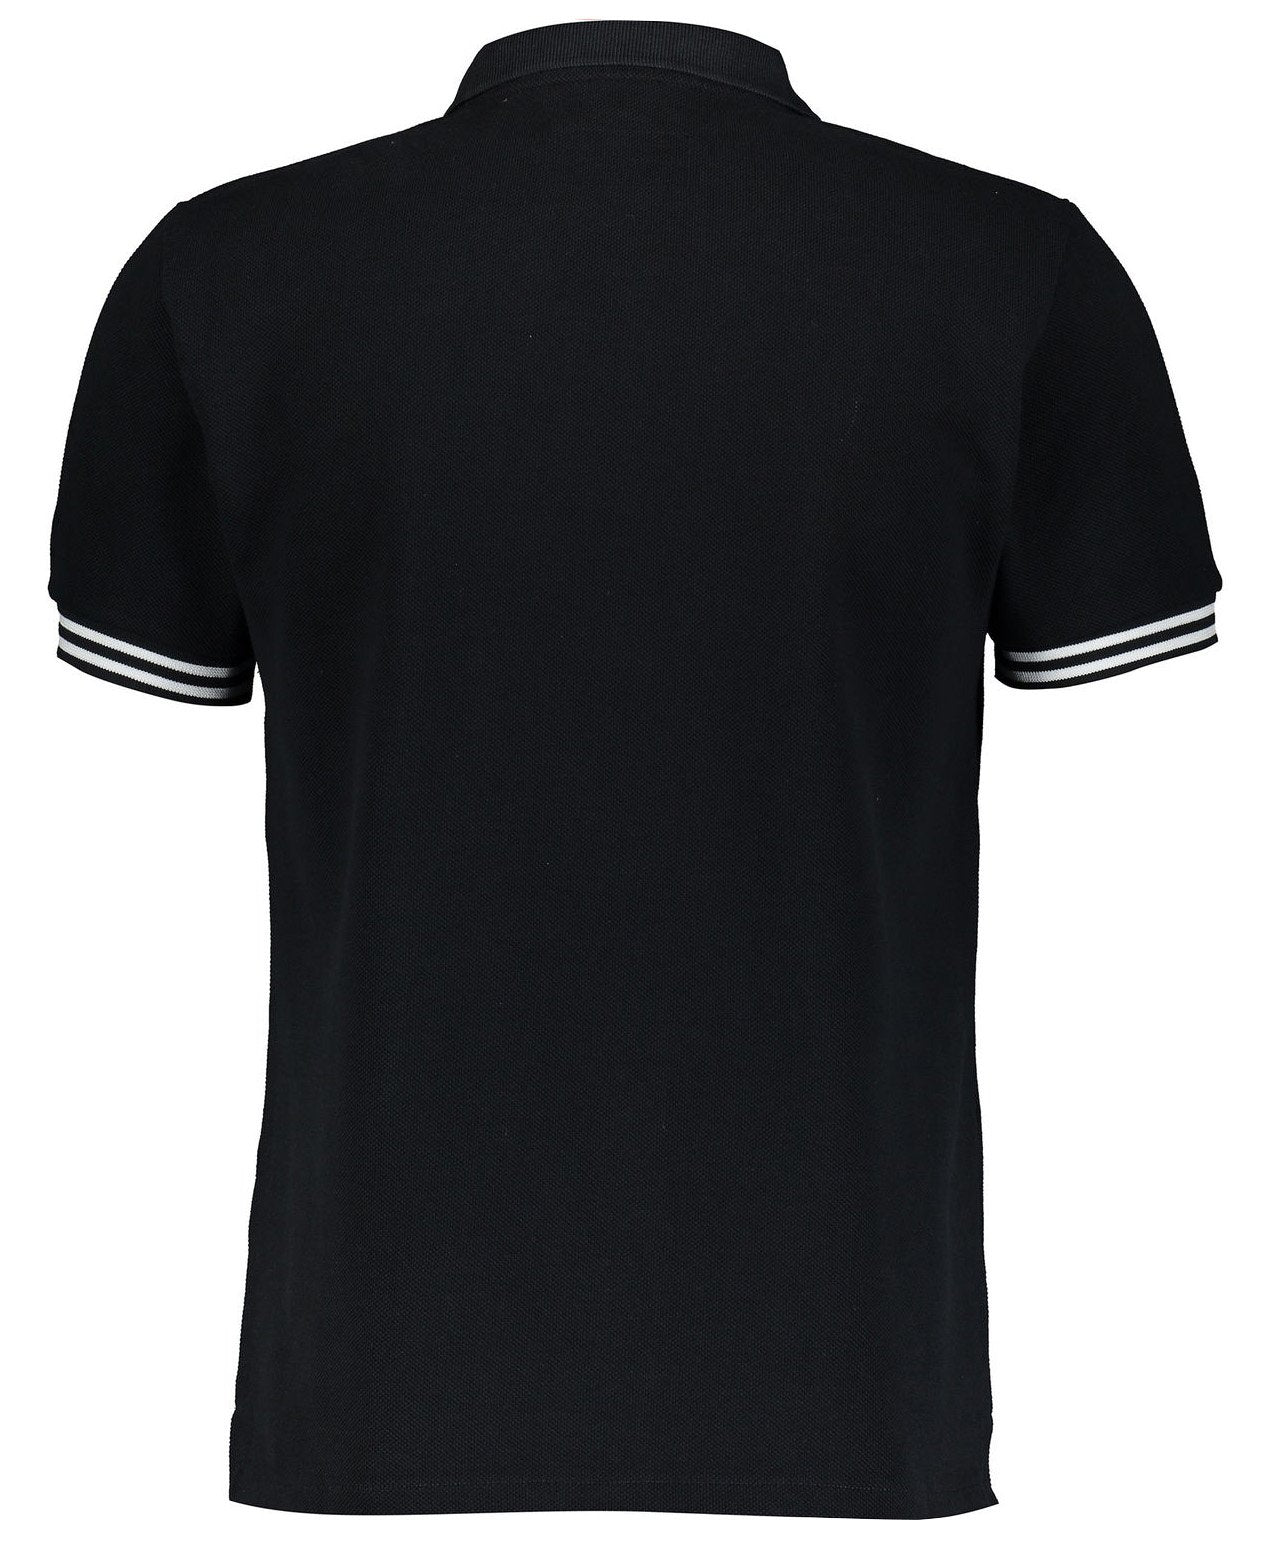 Marc Jacobs S84GC0290 S23135 900 Polo Shirt